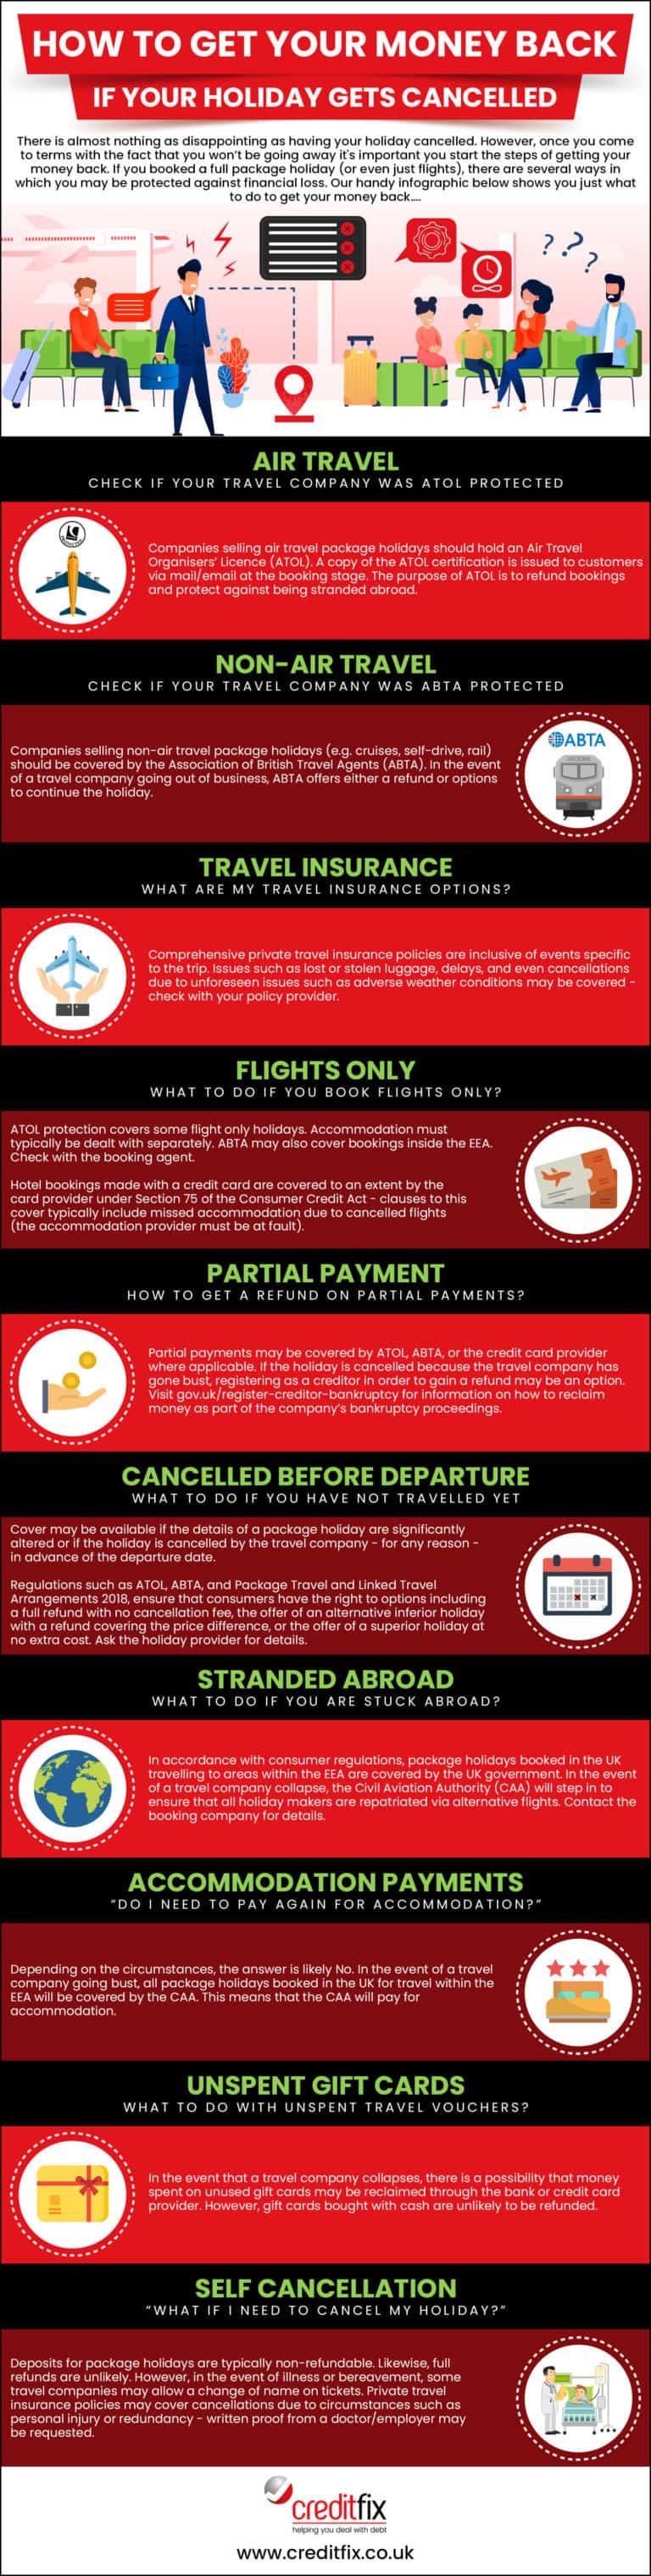 How to get your money back if your holiday gets cancelled